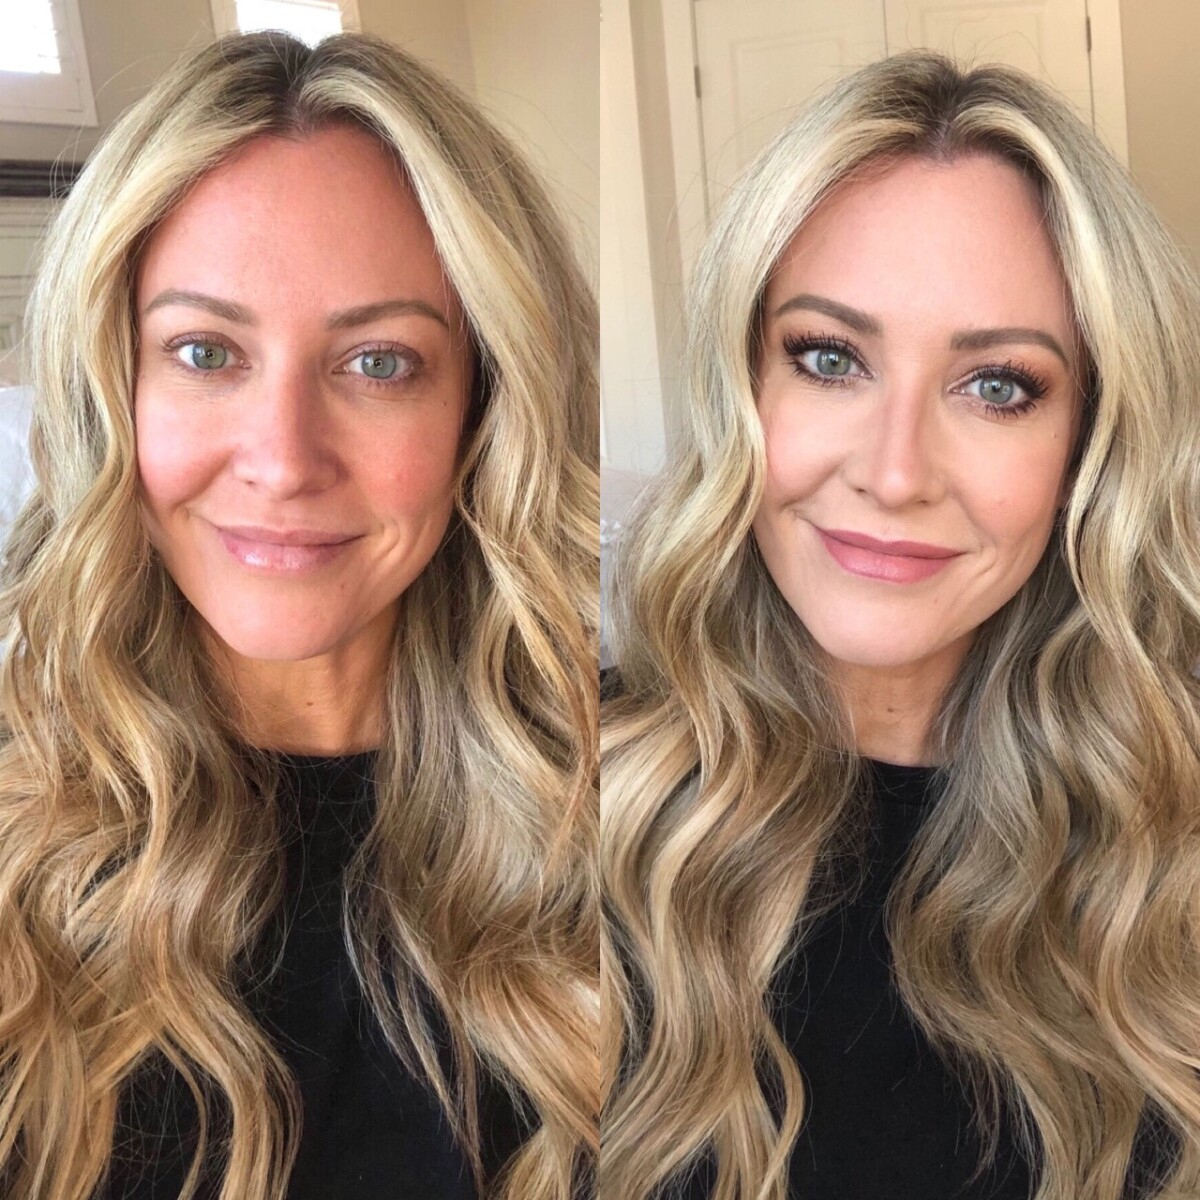 holiday beauty   Nordstrom Beauty by popular Houston beauty blog, Haute and Humid: side by side image of a woman with and without makeup.